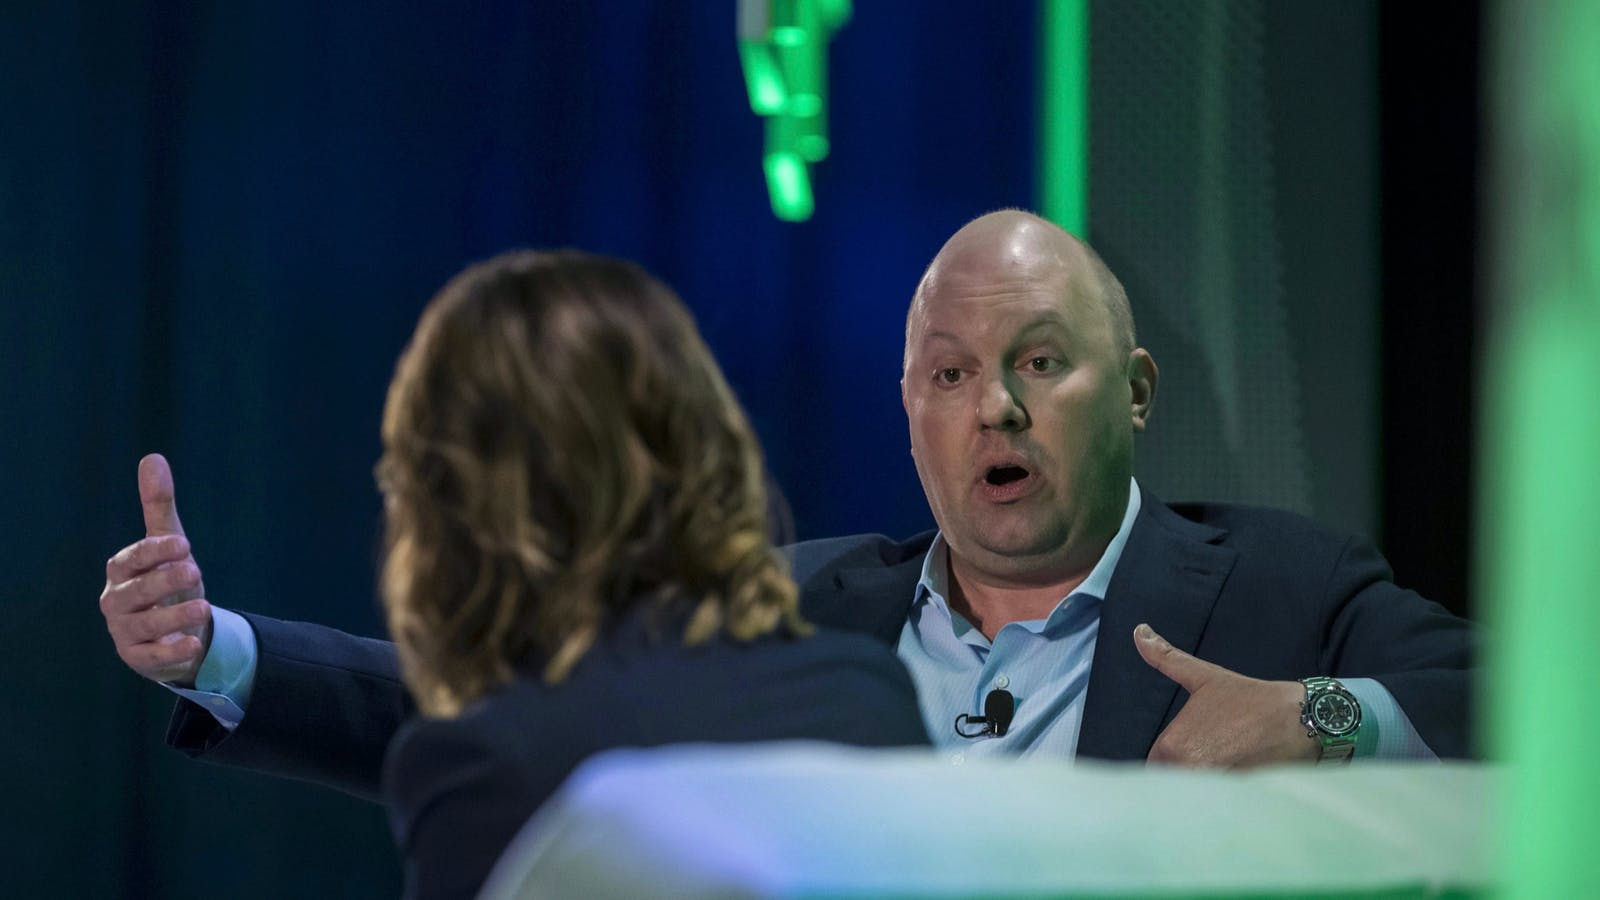 Andreessen Horowitz co-founder and general partner Marc Andreessen. Photo by Bloomberg